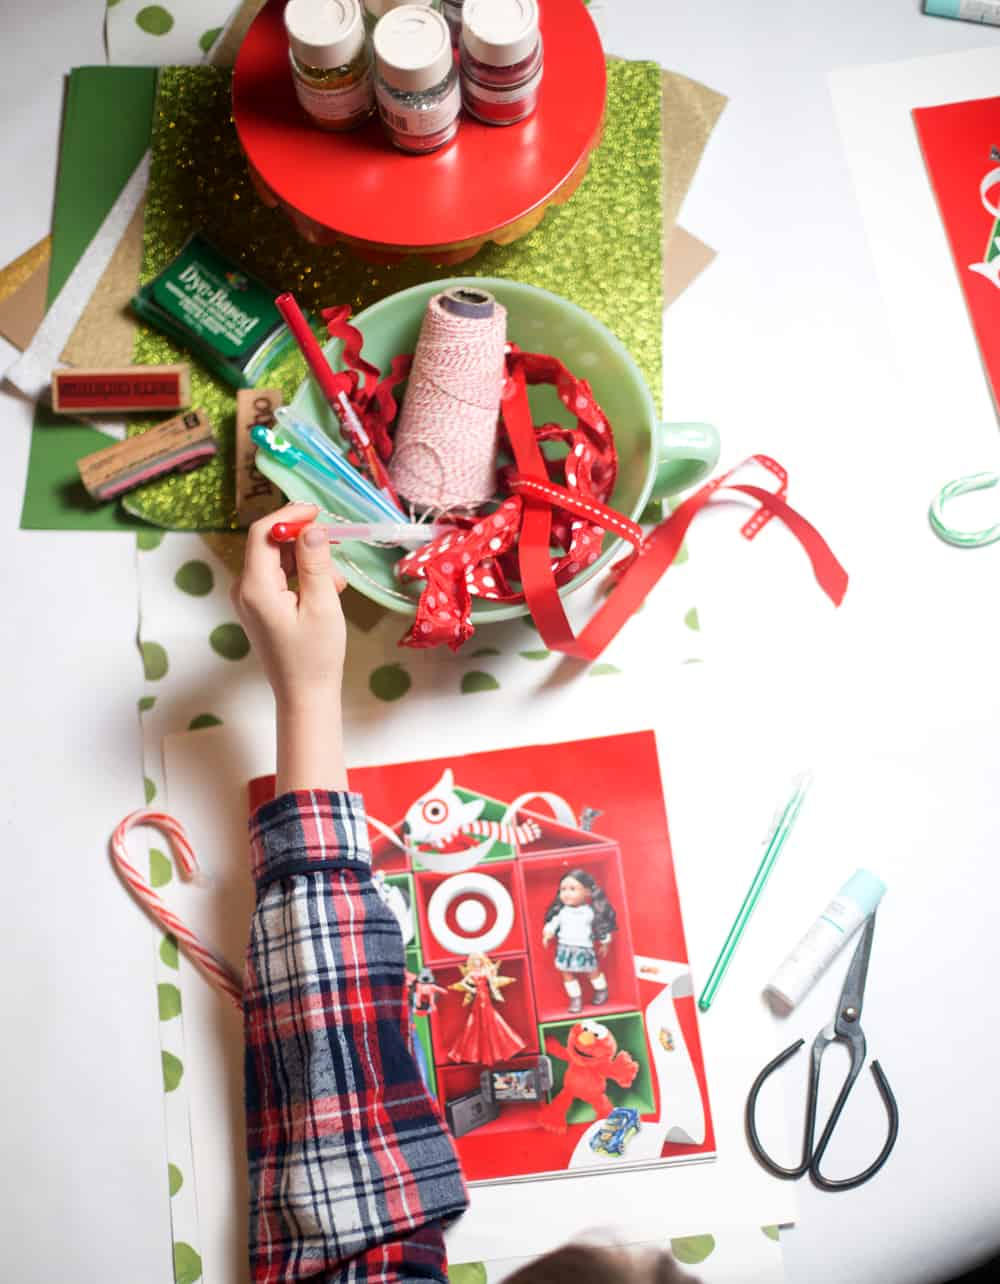 wish list party make | memorable family holiday | Christmas traditions | list crafting party | kids Christmas crafts | tradition craft gift ideas lists #SamsungTargetTech #CollectiveBias  #ad